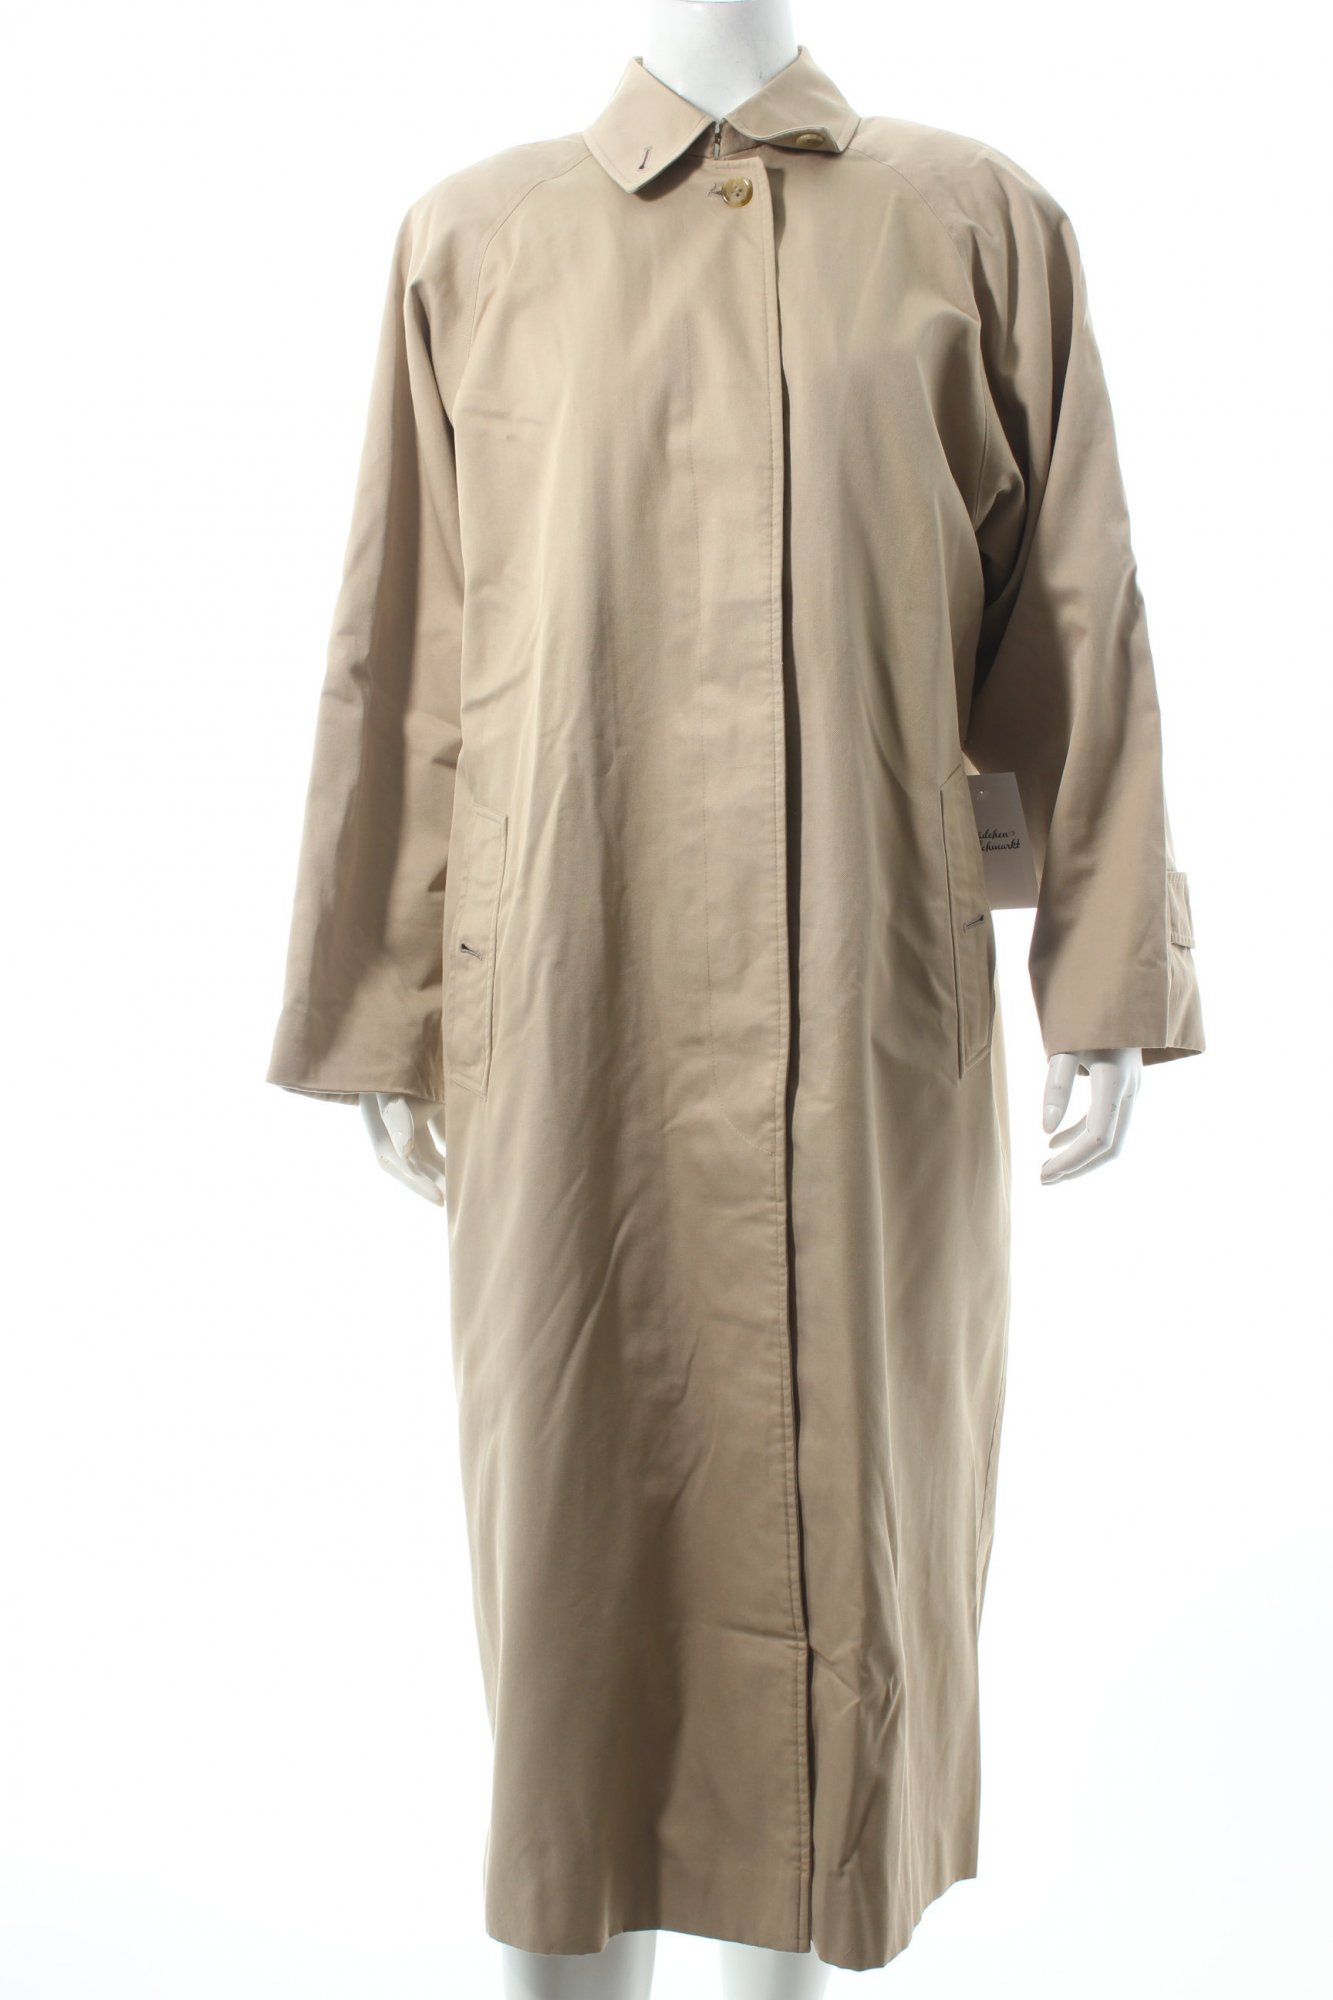 burberry trenchcoat beige klassischer stil damen gr de 40 mantel coat ebay. Black Bedroom Furniture Sets. Home Design Ideas